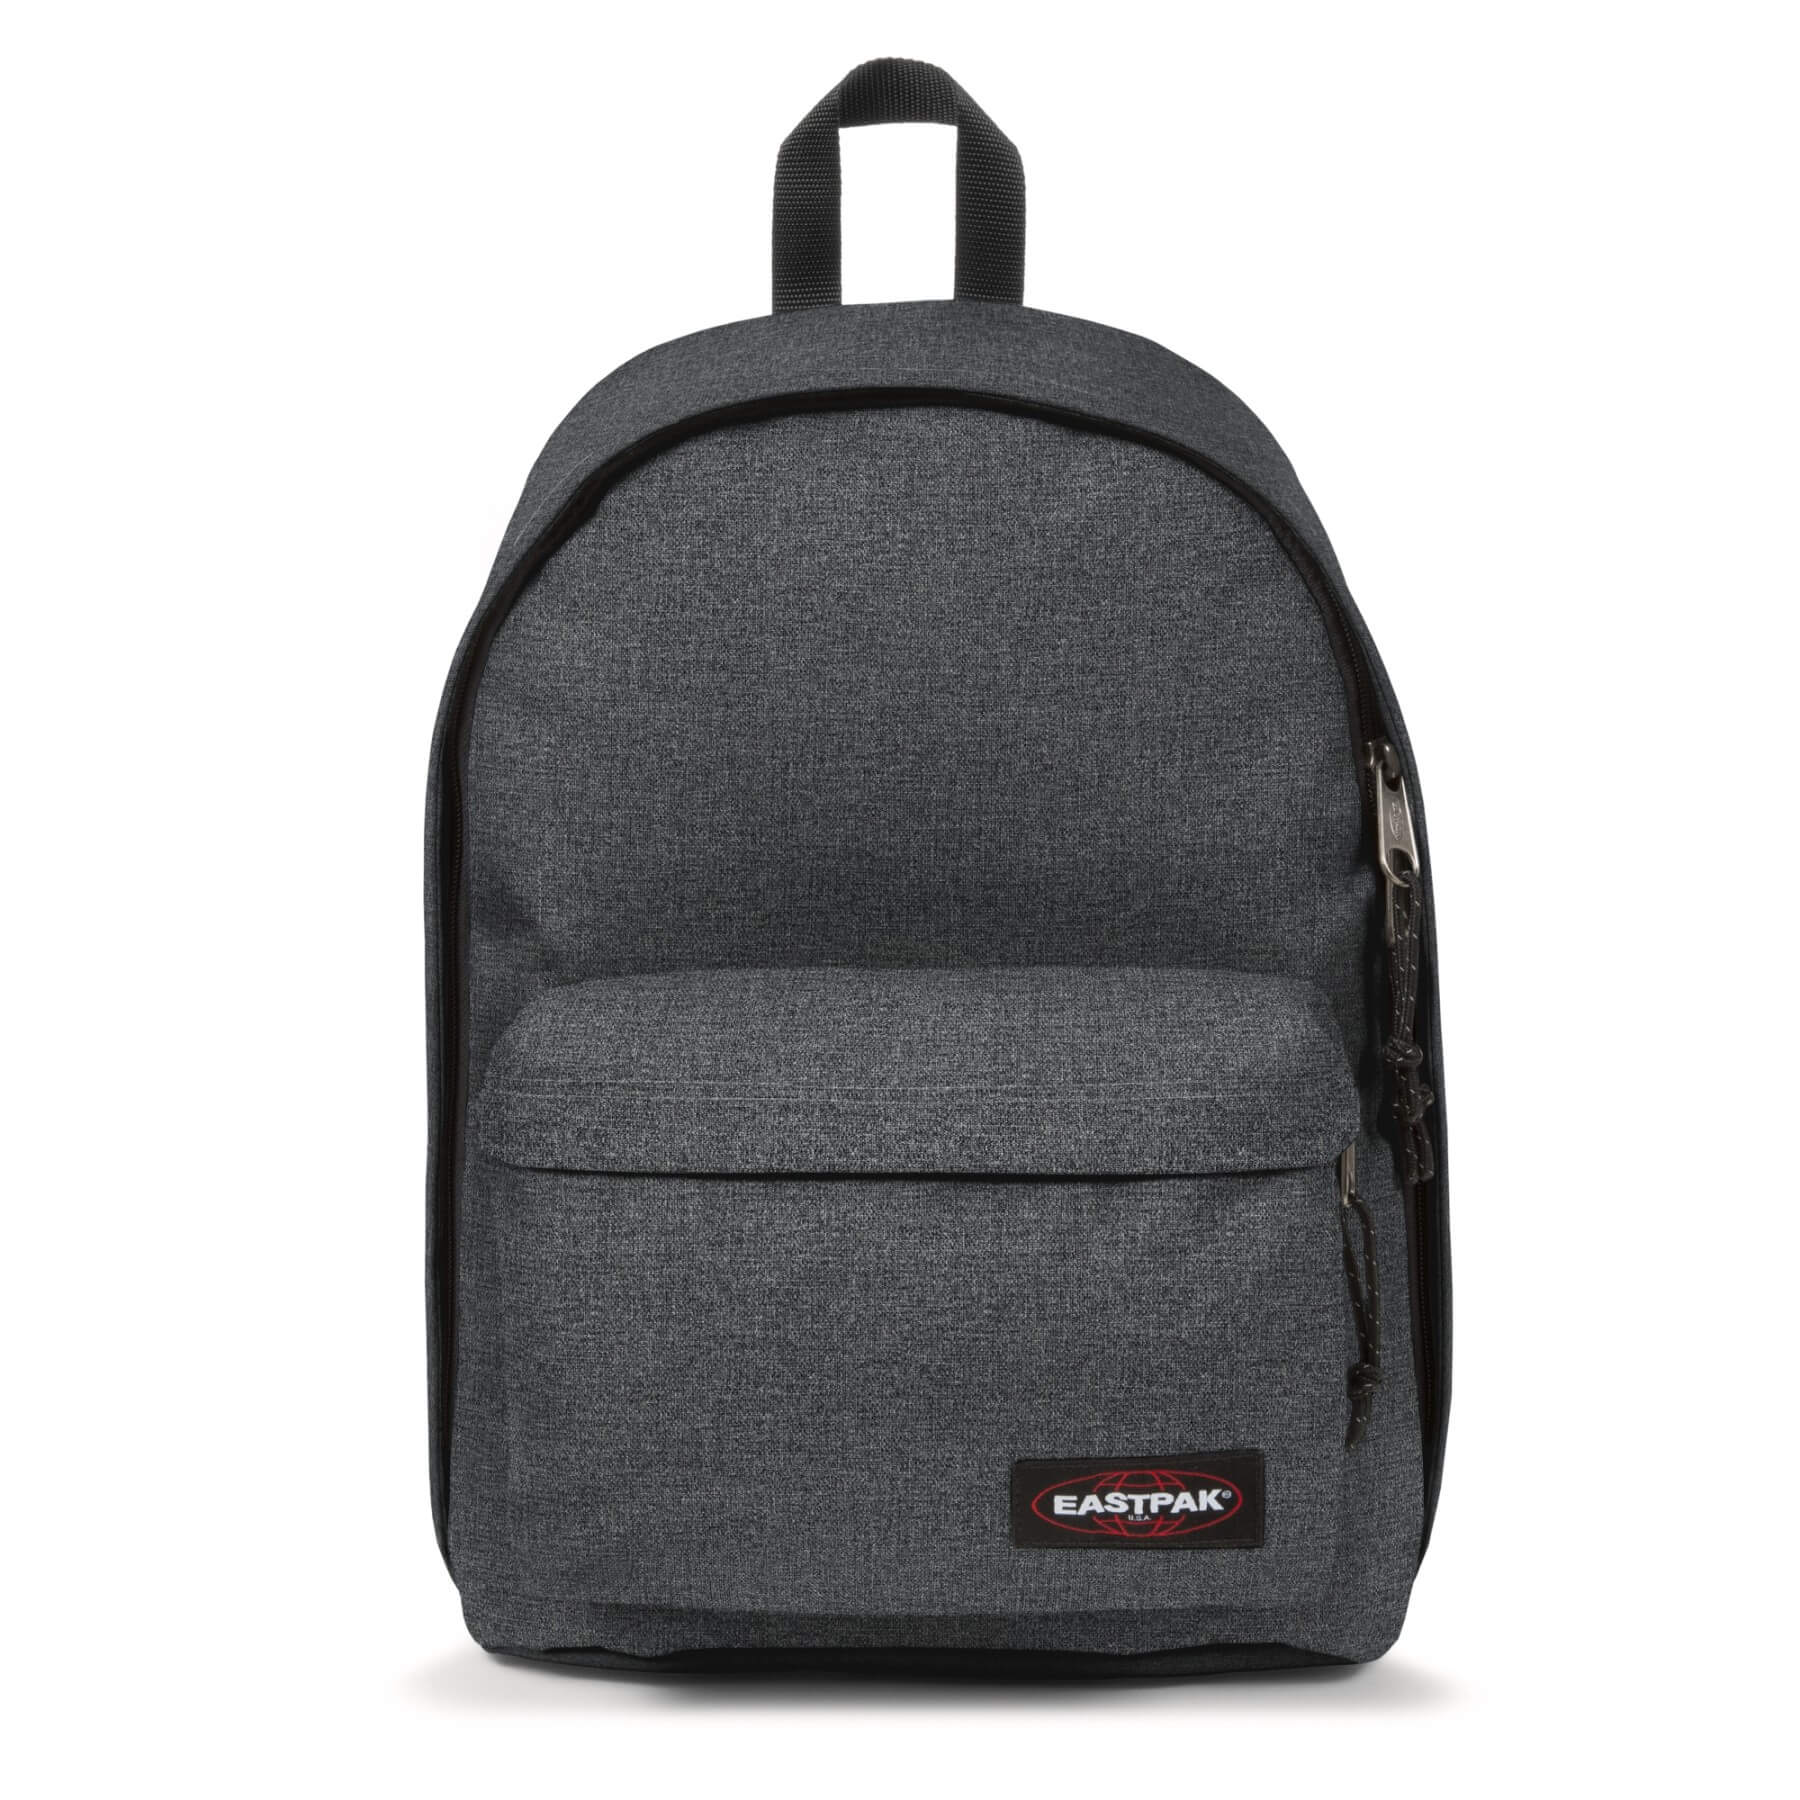 Of Authentic Dos Office Ek767 A Eastpak Sac Out FKcuT1lJ3